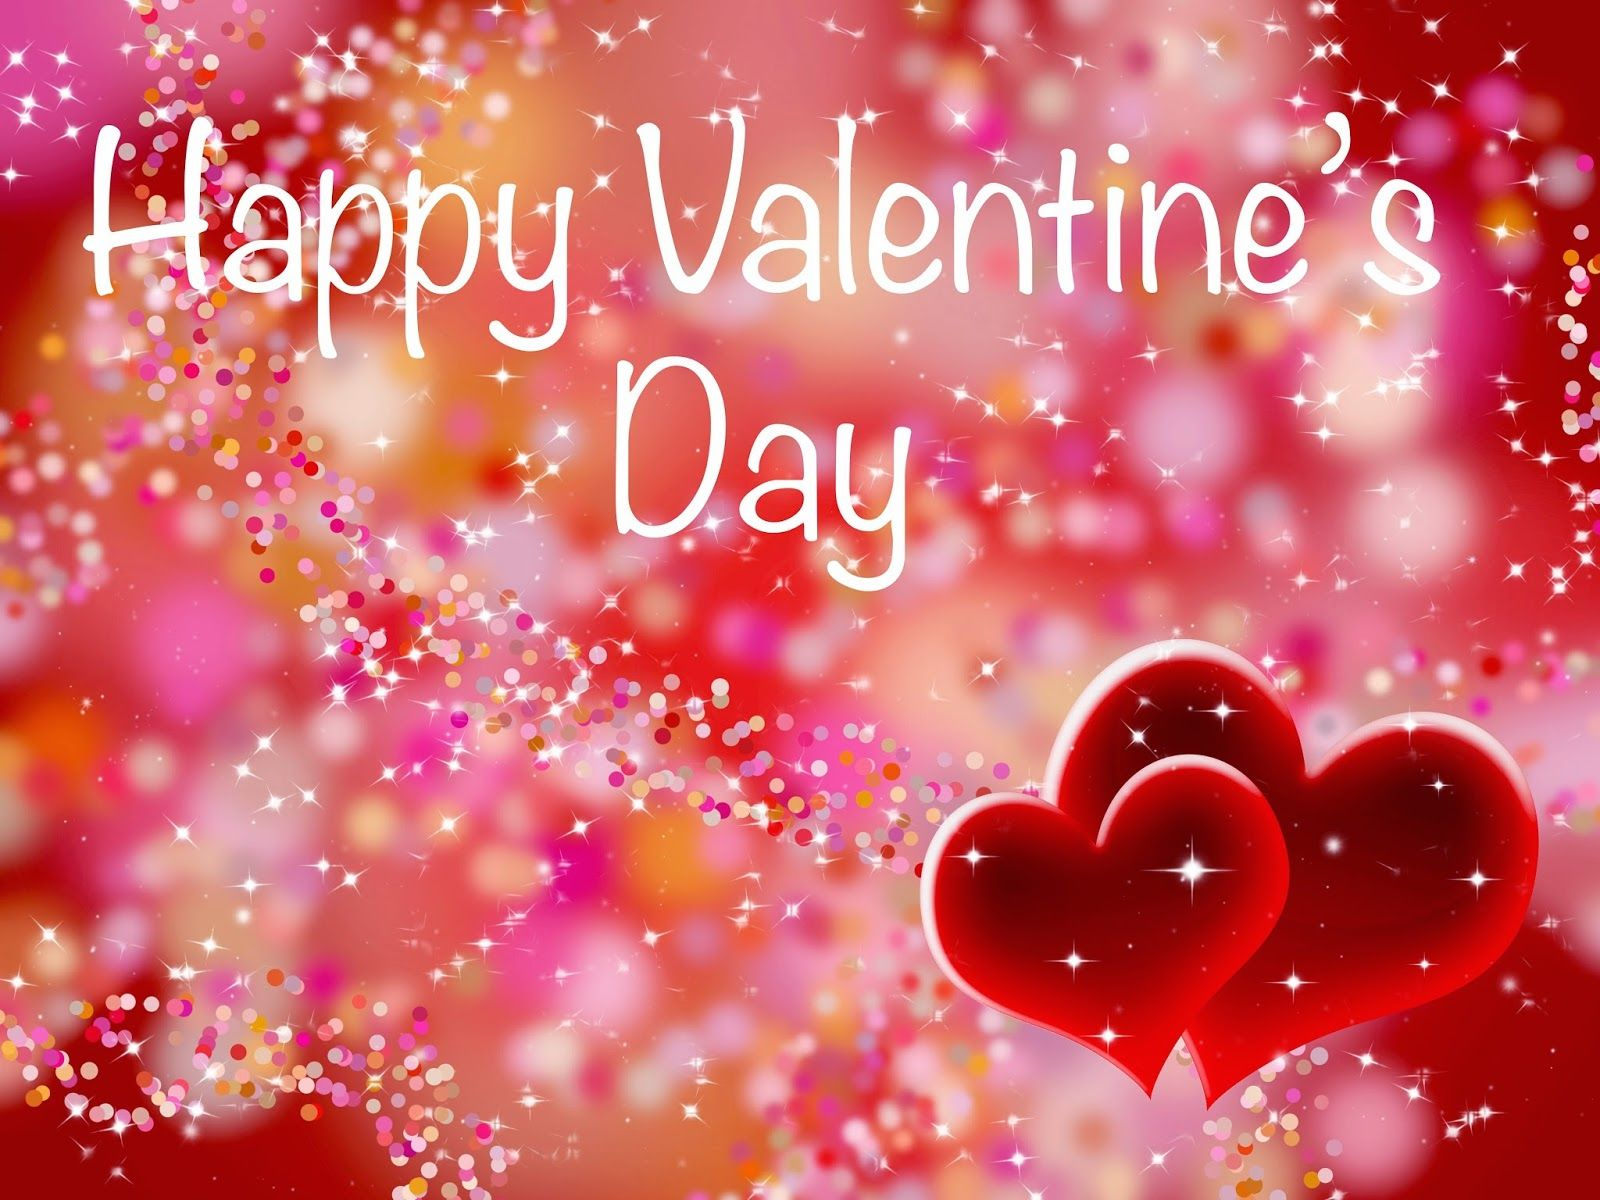 happy valentines day check out more exciting hd wallpapers covers and dps for social - Live Valentine Wallpaper